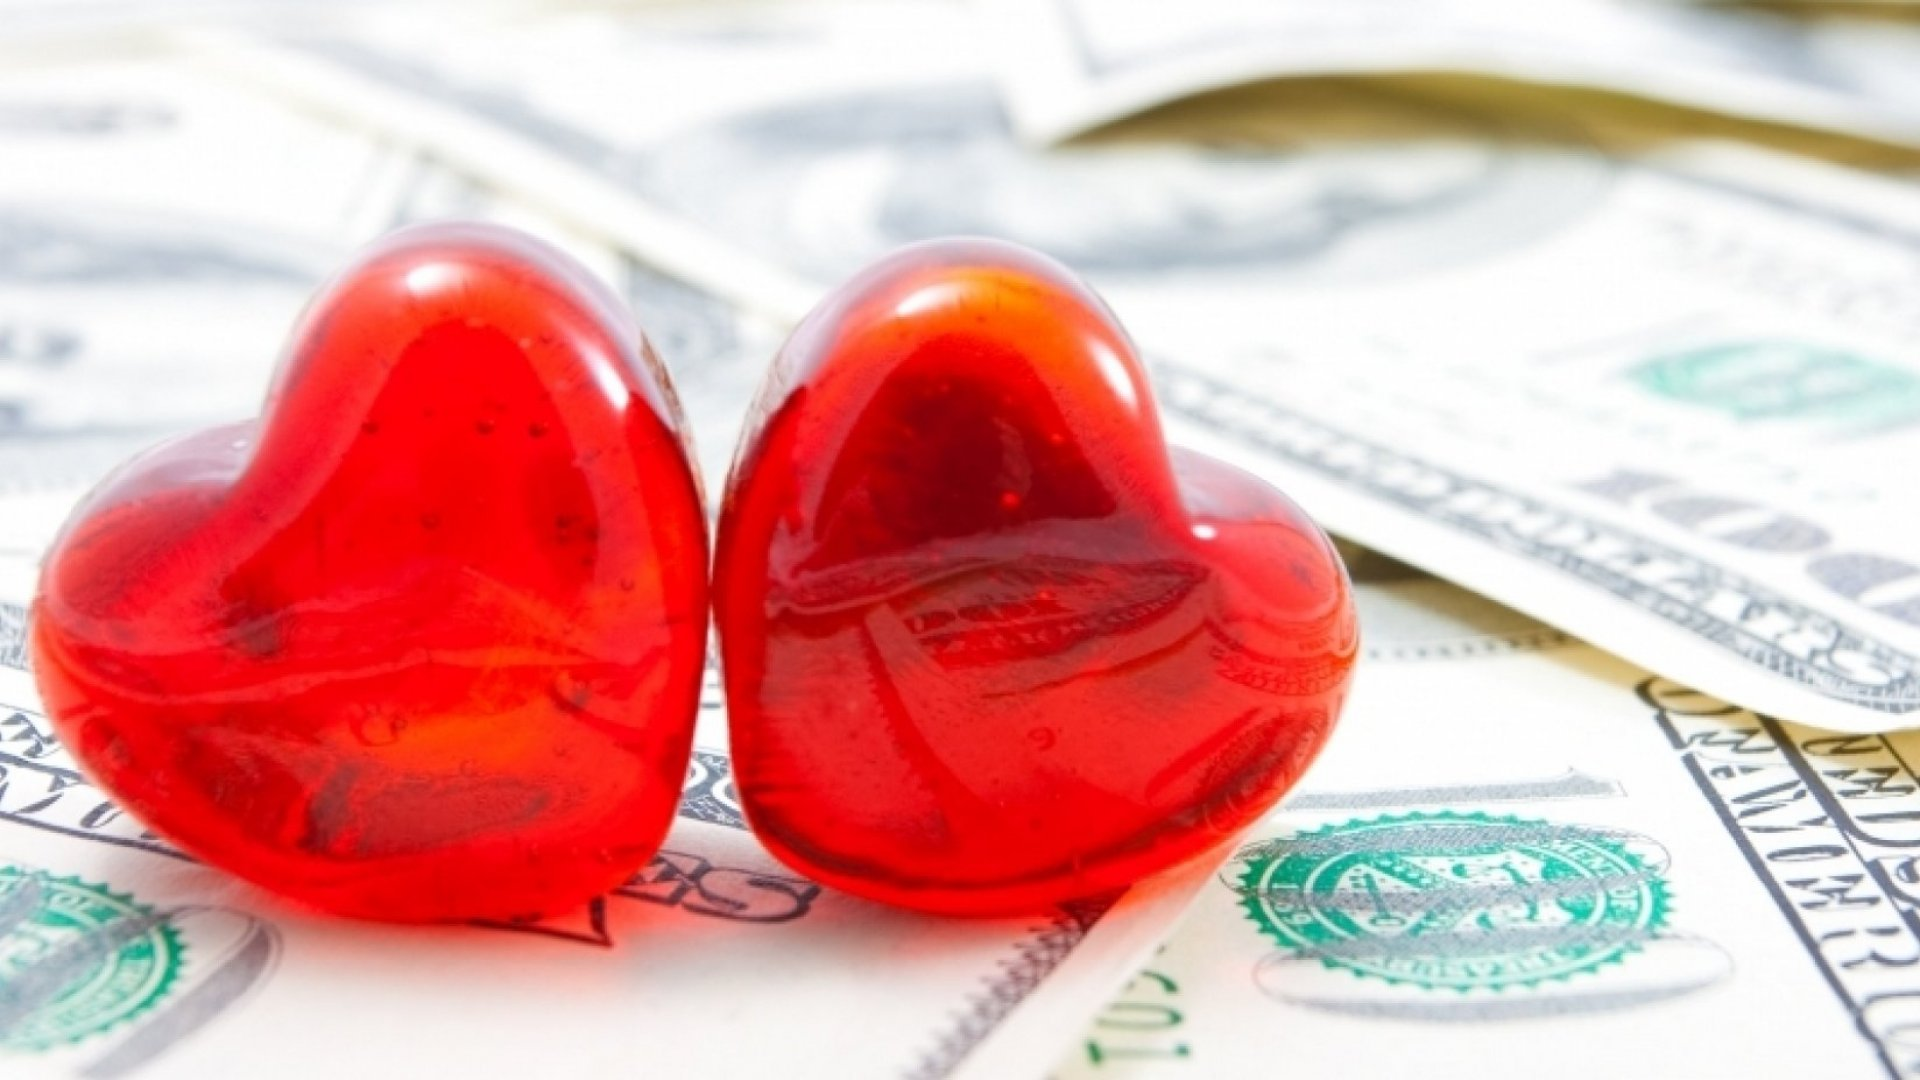 On Valentine's Day, Find Yourself a Lender to Love